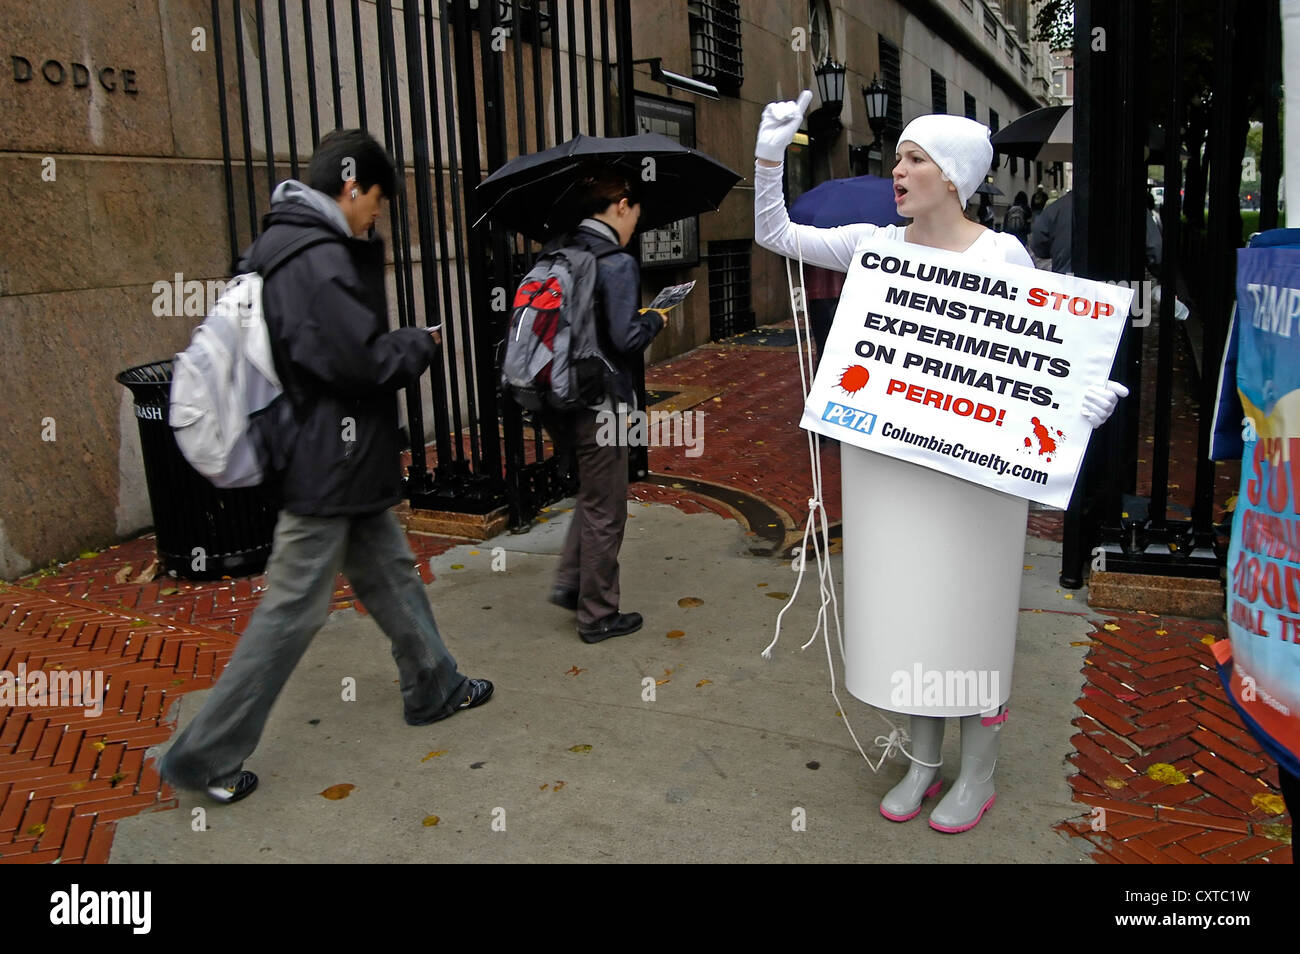 Woman in tampon costume protesting for PETA (People For The Ethical Treatment Of Animals) at Columbia University. - Stock Image